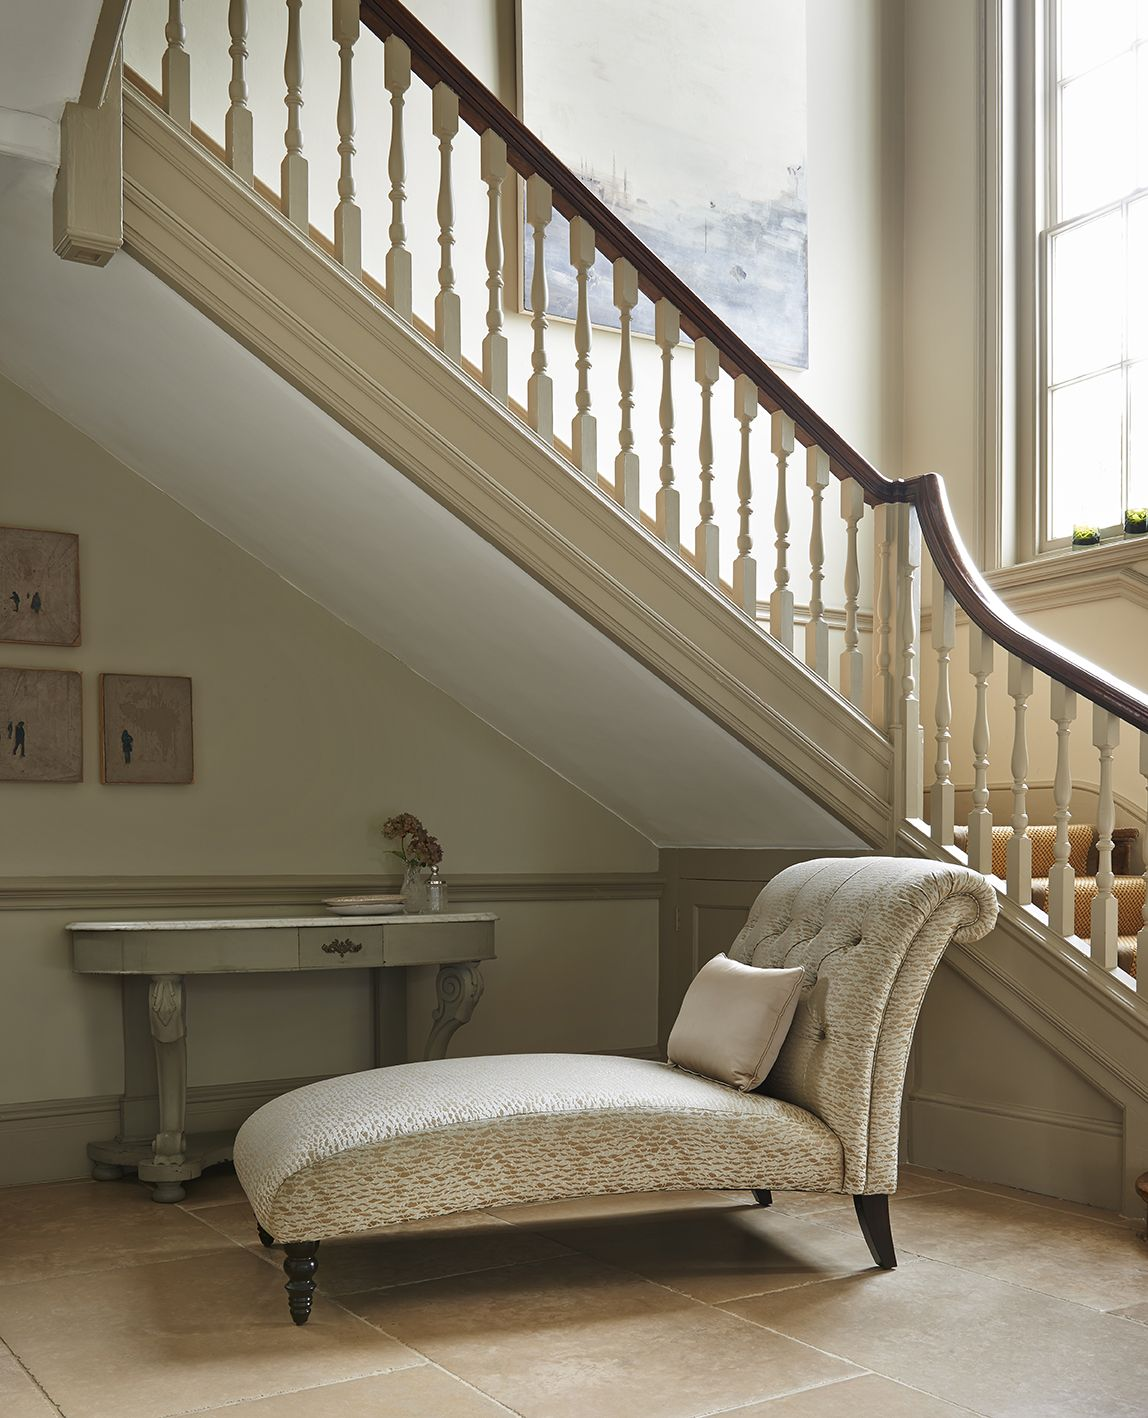 Parker Knoll Eaton Square Chaise in Kavita Co-ordinate Biscuit, with bolster in Asina Cashew